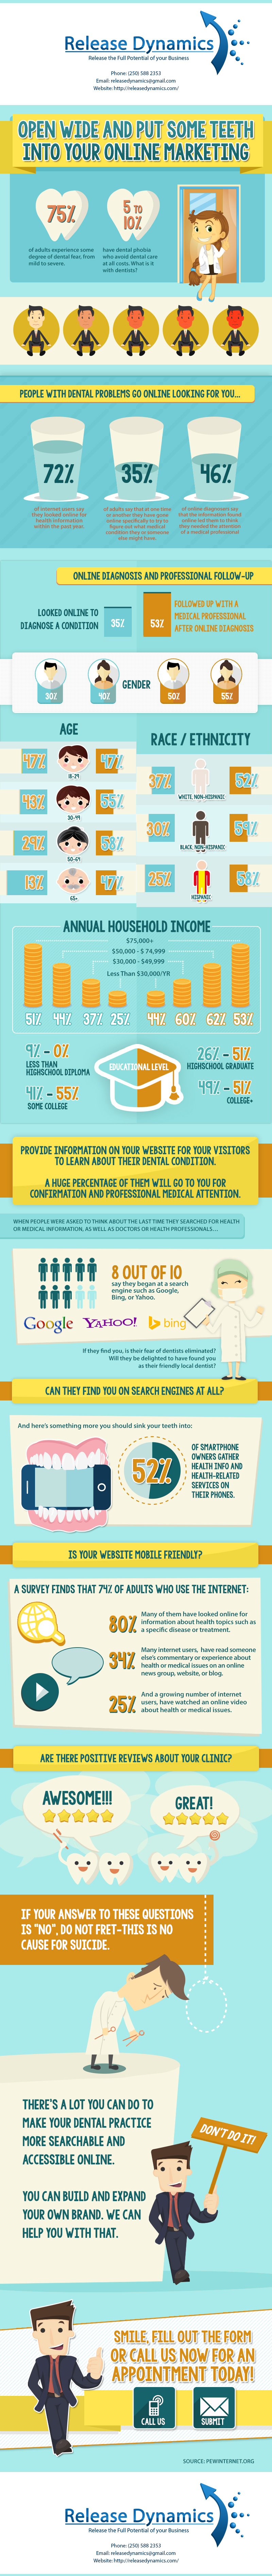 ReleaseDynamics-Marketing-for-Dentists-Infographic